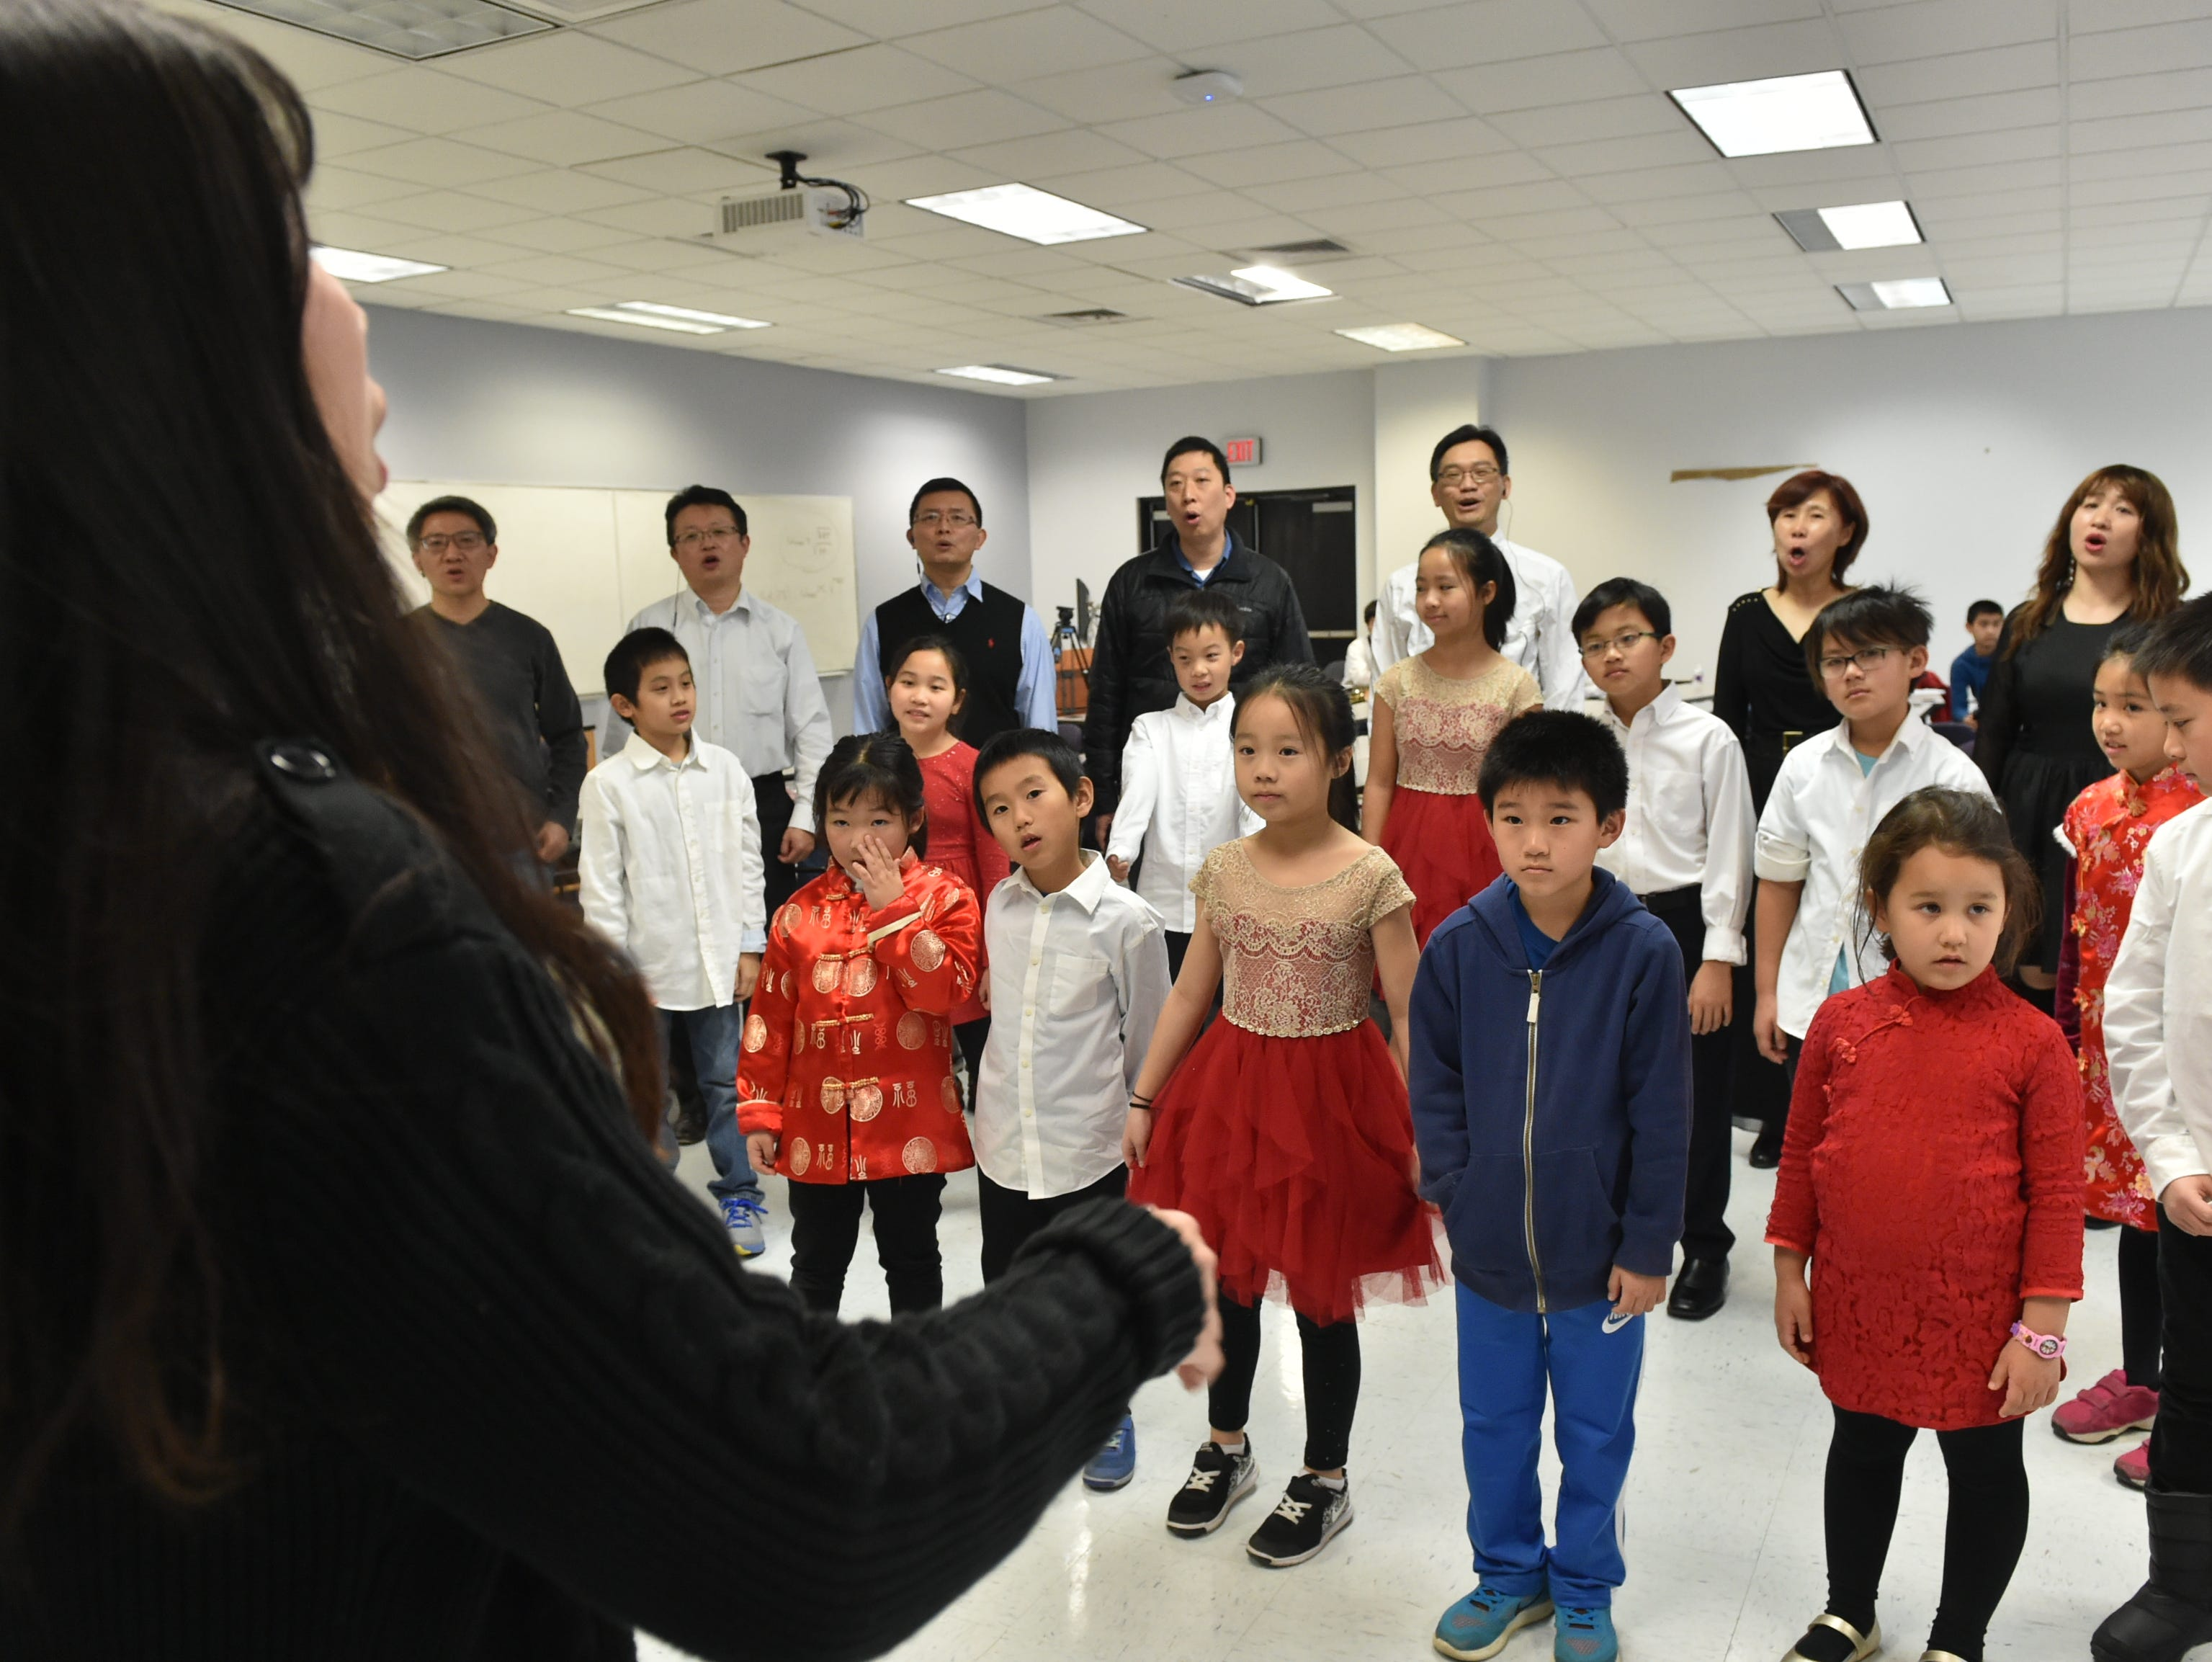 Students from the Chinese School at Tougaloo College practice for a performance in the upcoming Chinese New Year events to be held during the Spring Festival at the Mississippi Museum Art on Feb. 2 in Jackson. Sunday, Jan. 27, 2019